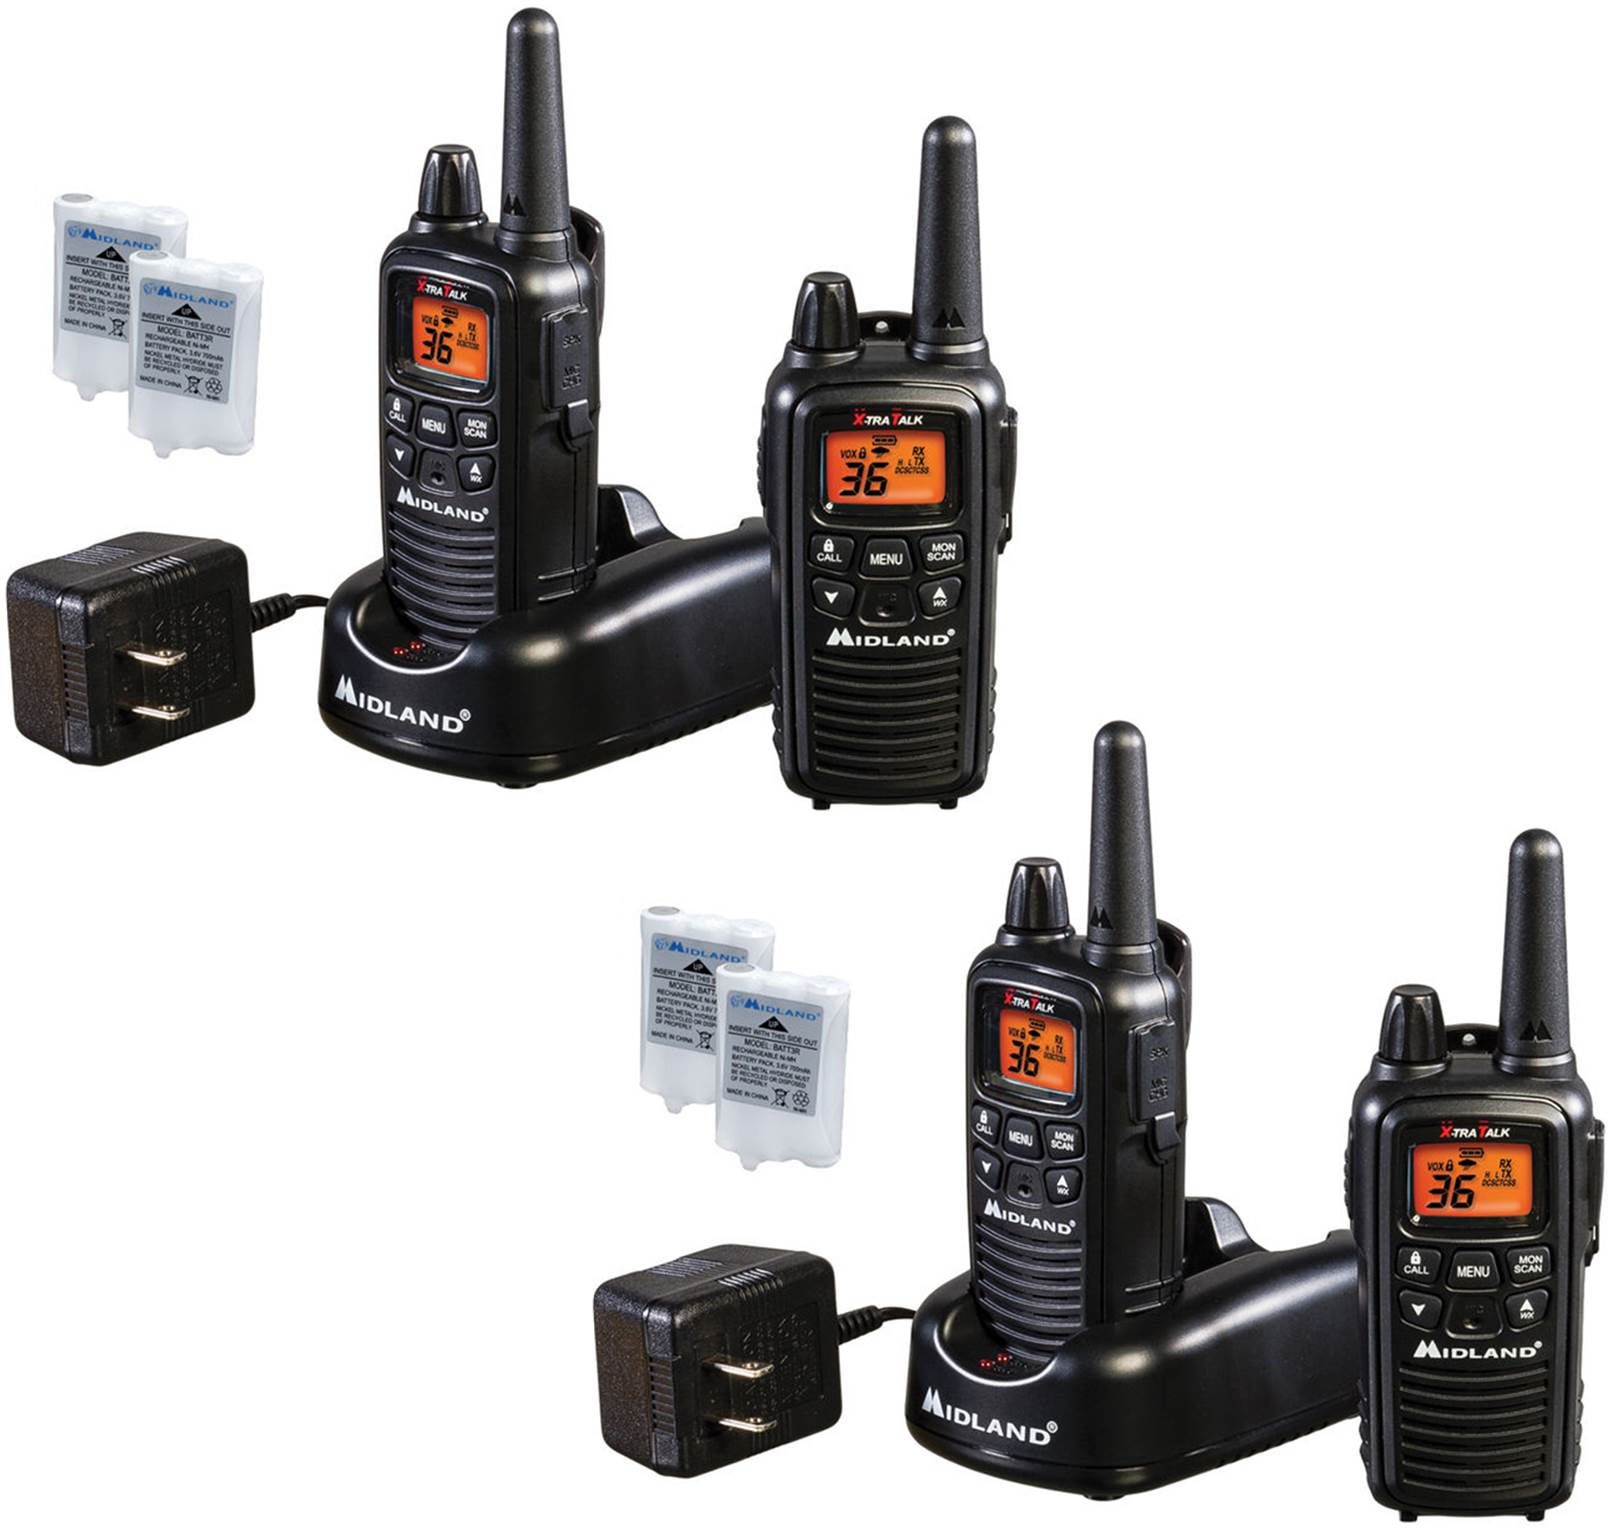 Rechargeable Walkie Talkie 30 Miles Midland LXT600VP3 Xtra Talk Handheld Two Way Radios 4 PACK 36 CH